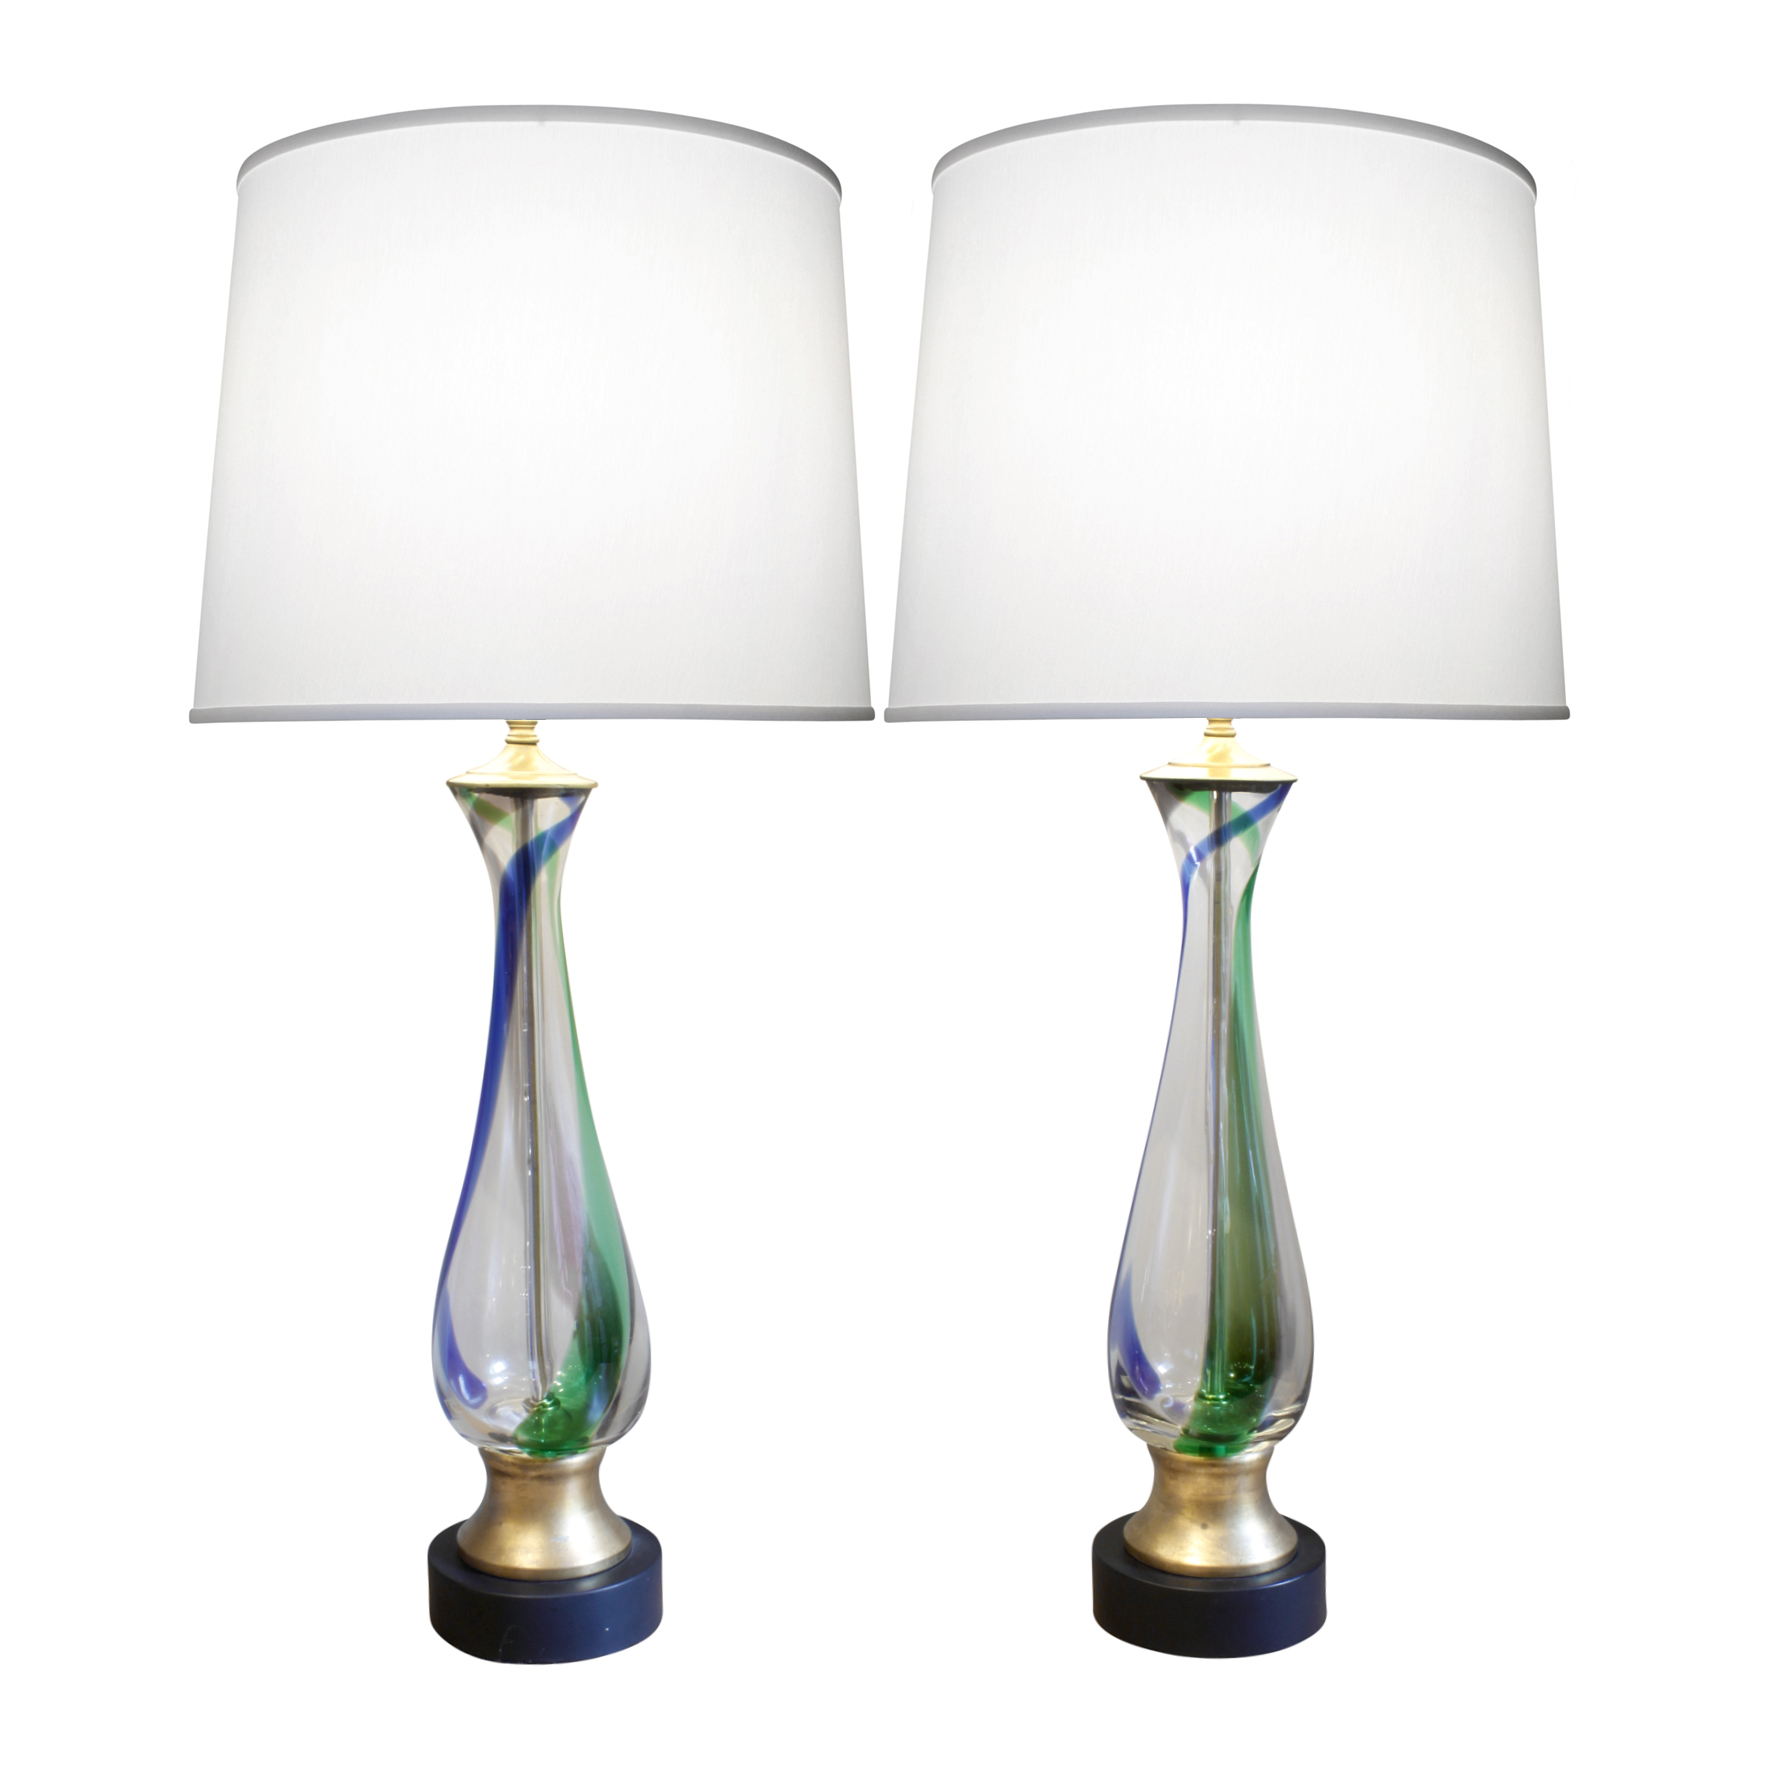 Murano pr red blue green clear table lamps pair.JPG